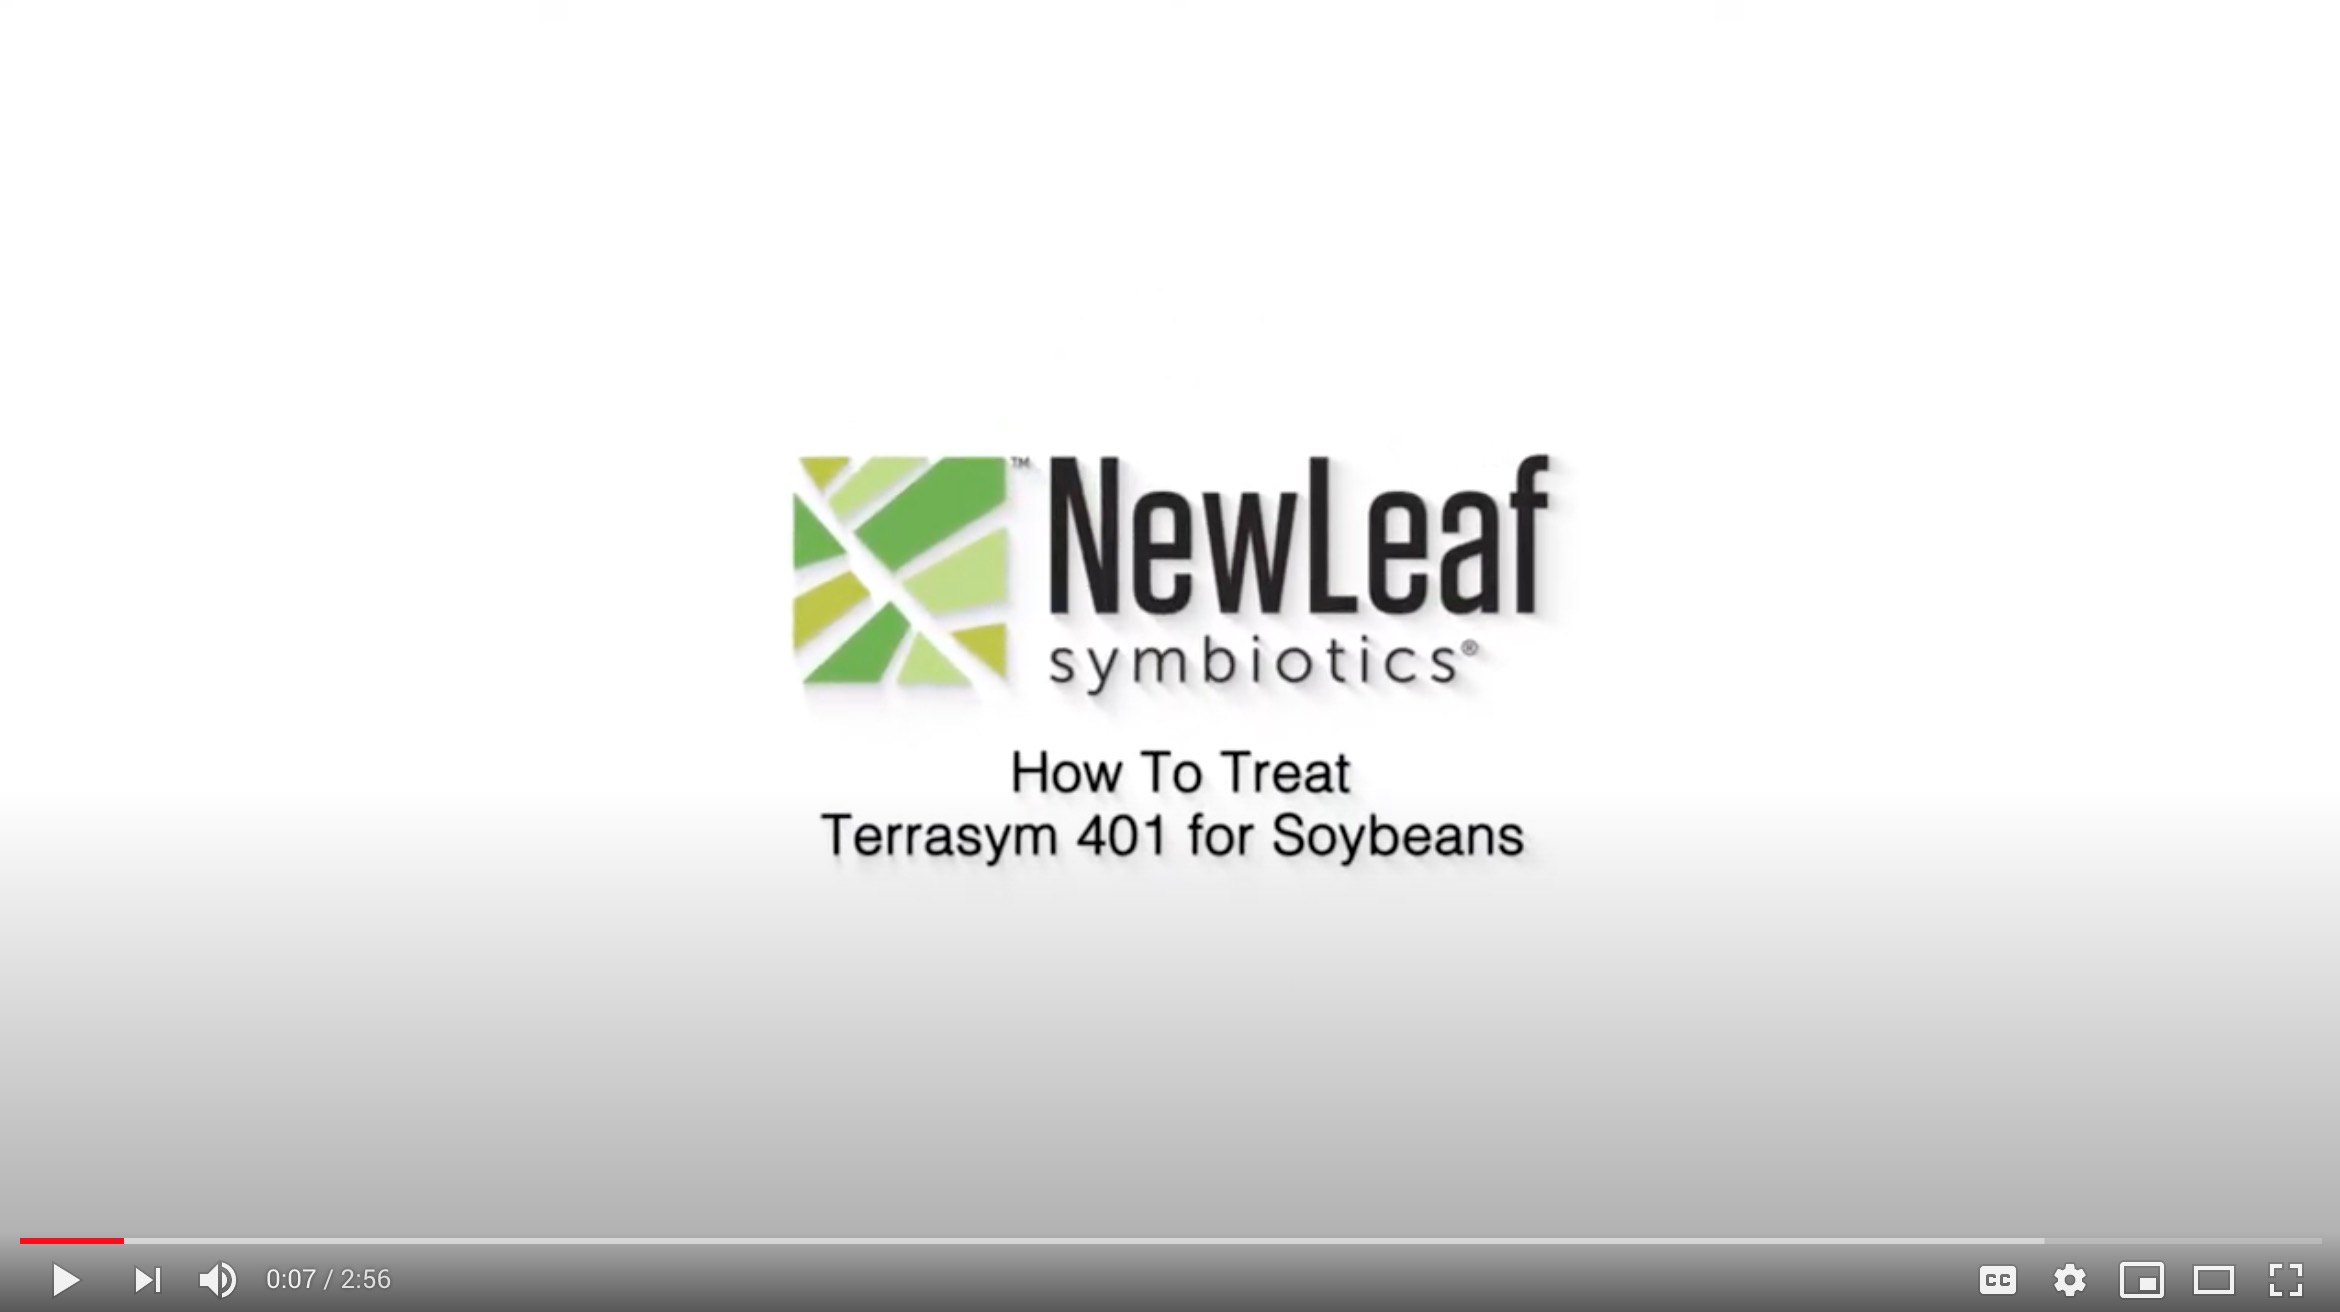 How to treat soybeans with Terrasym